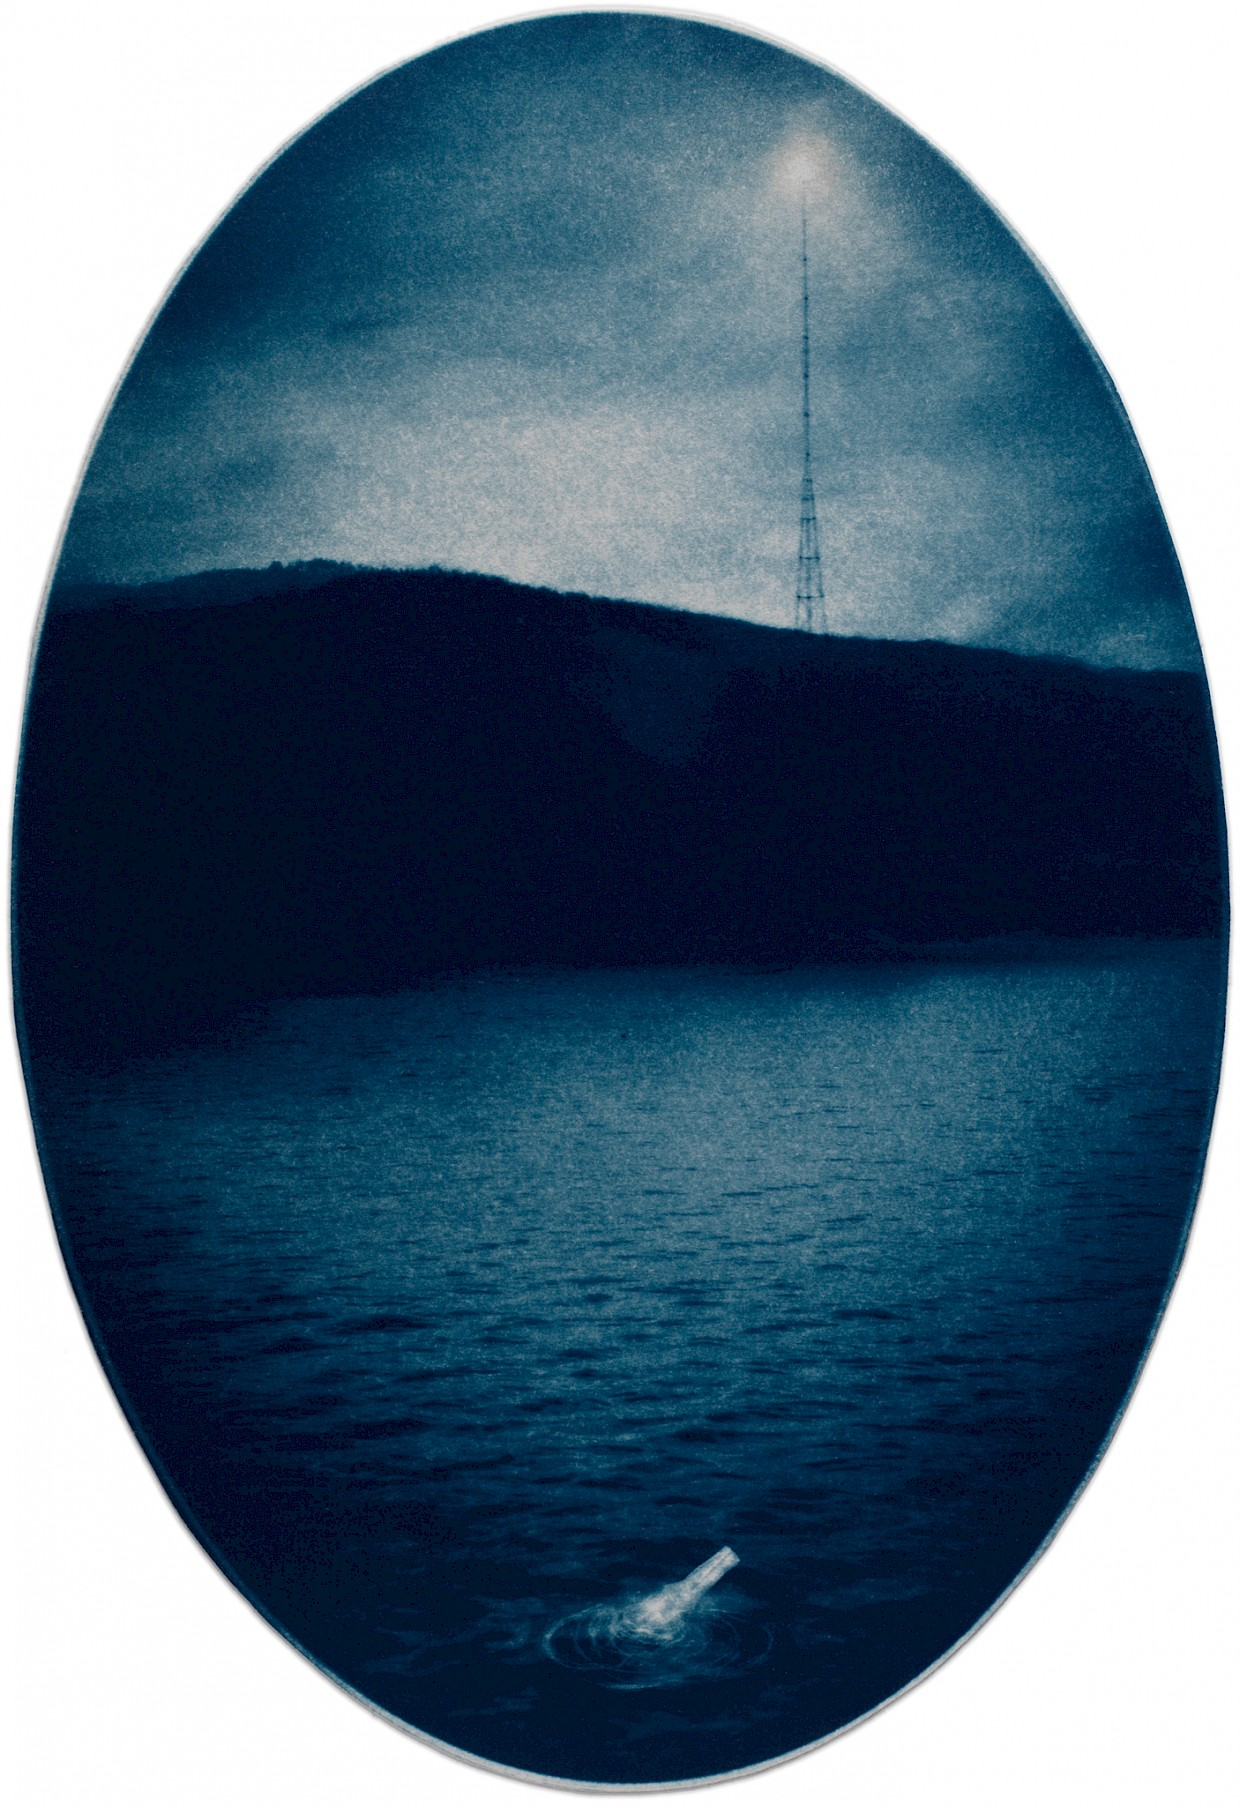 surreal image of message in a bottle with broadcast tower in the background